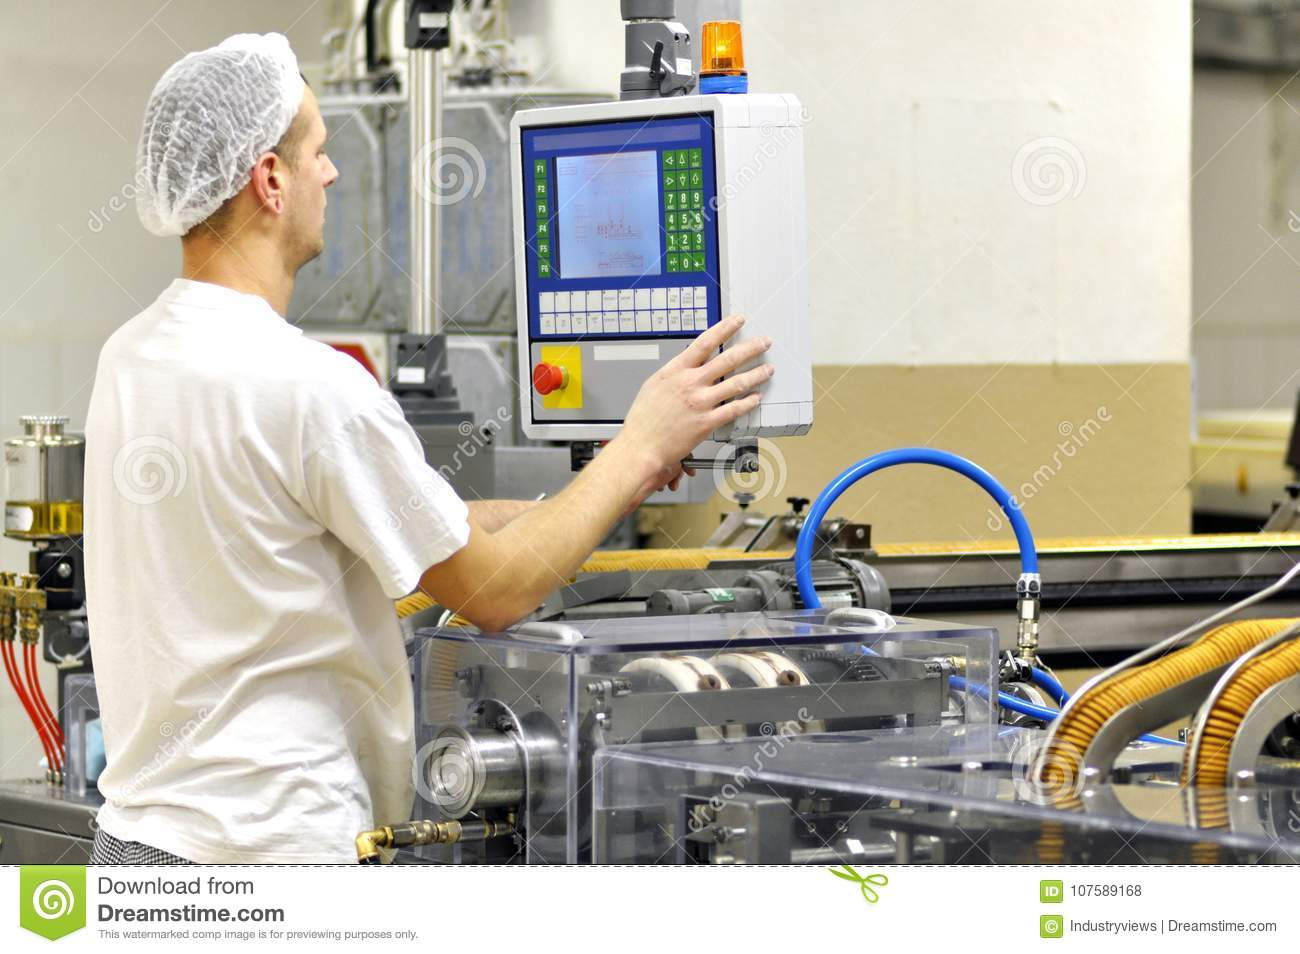 Food industry - biscuit production in a factory on a conveyor be